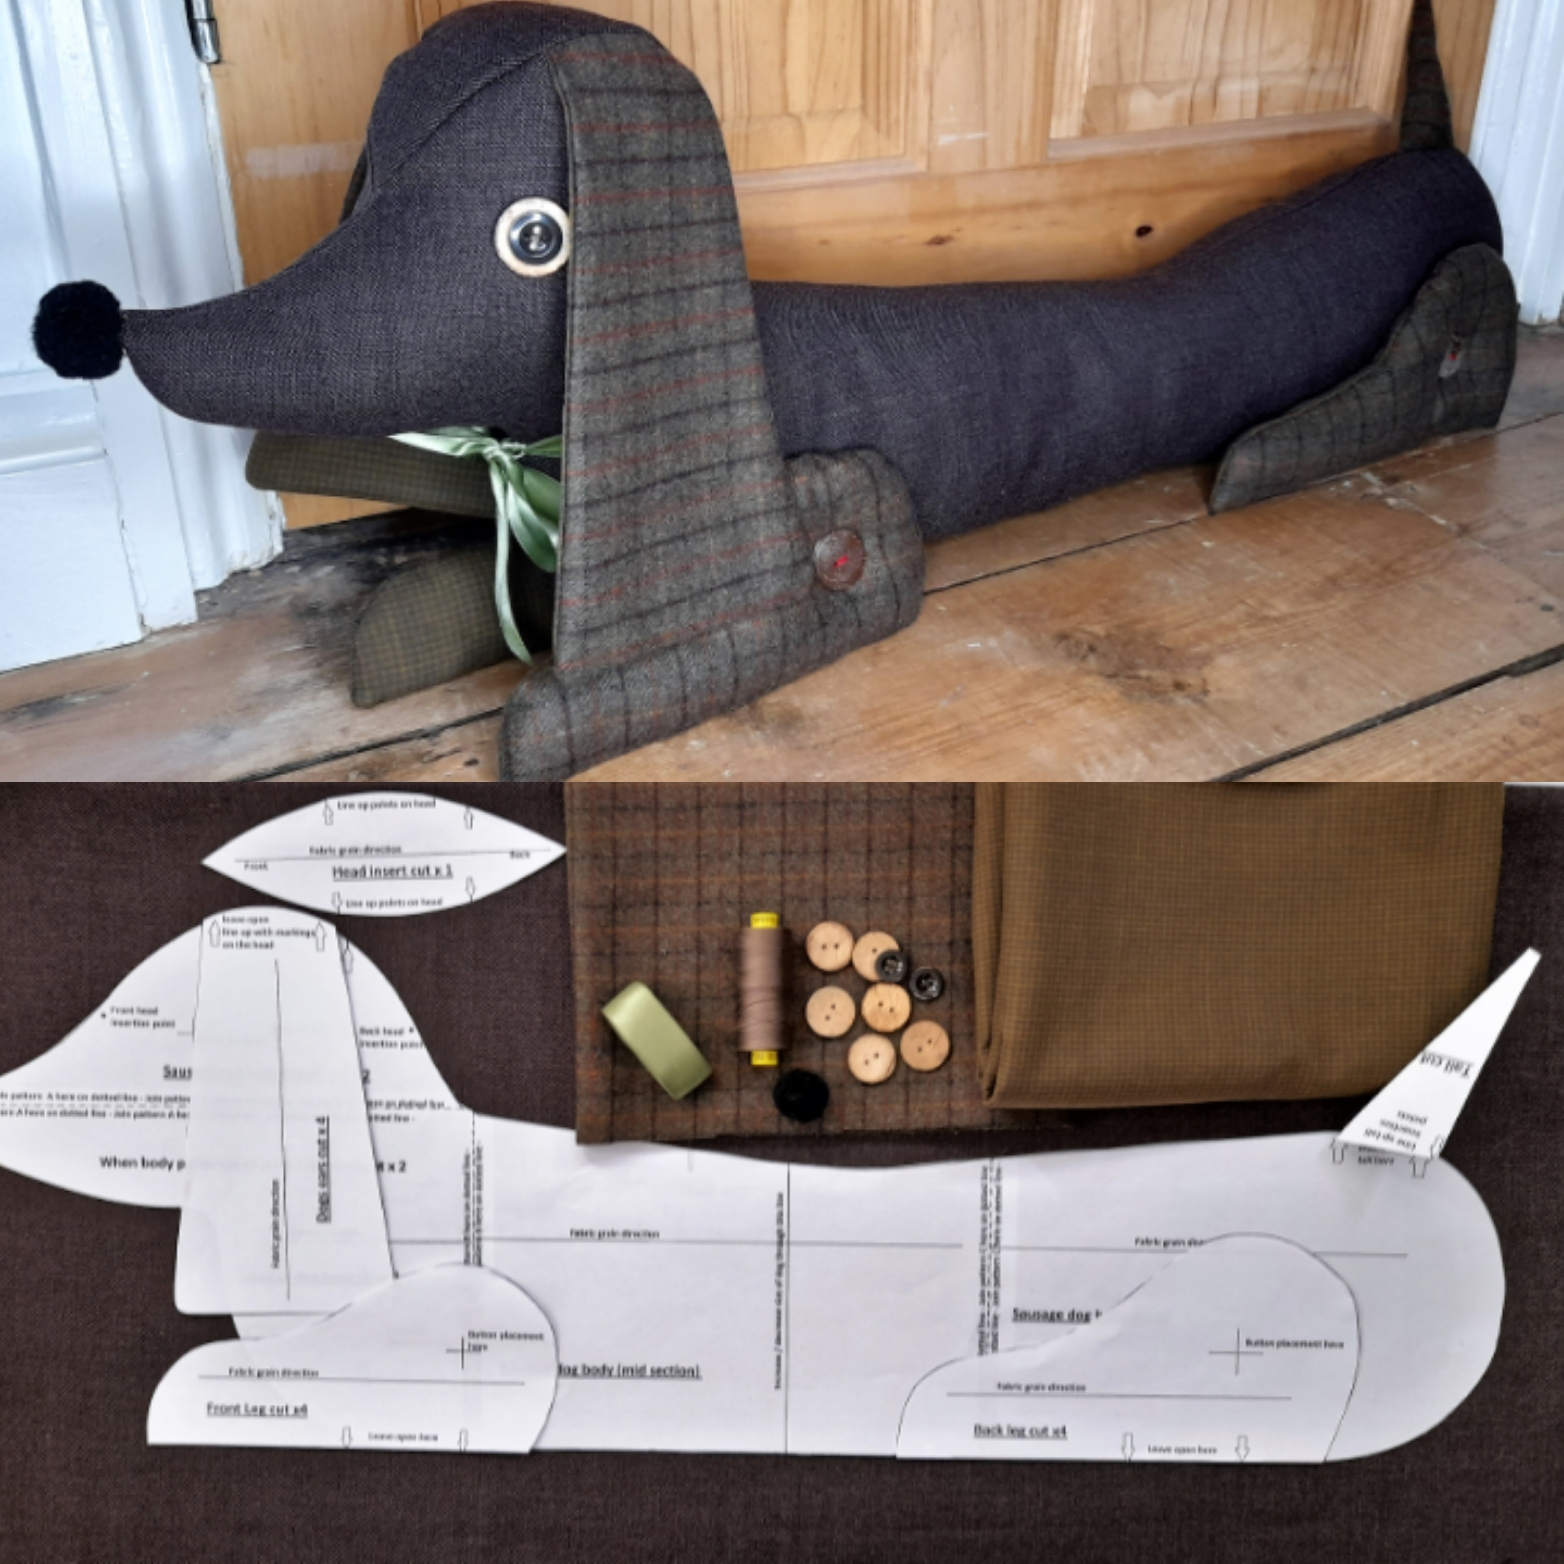 How to make Chipolata - the Sausage Dog draft excluder.